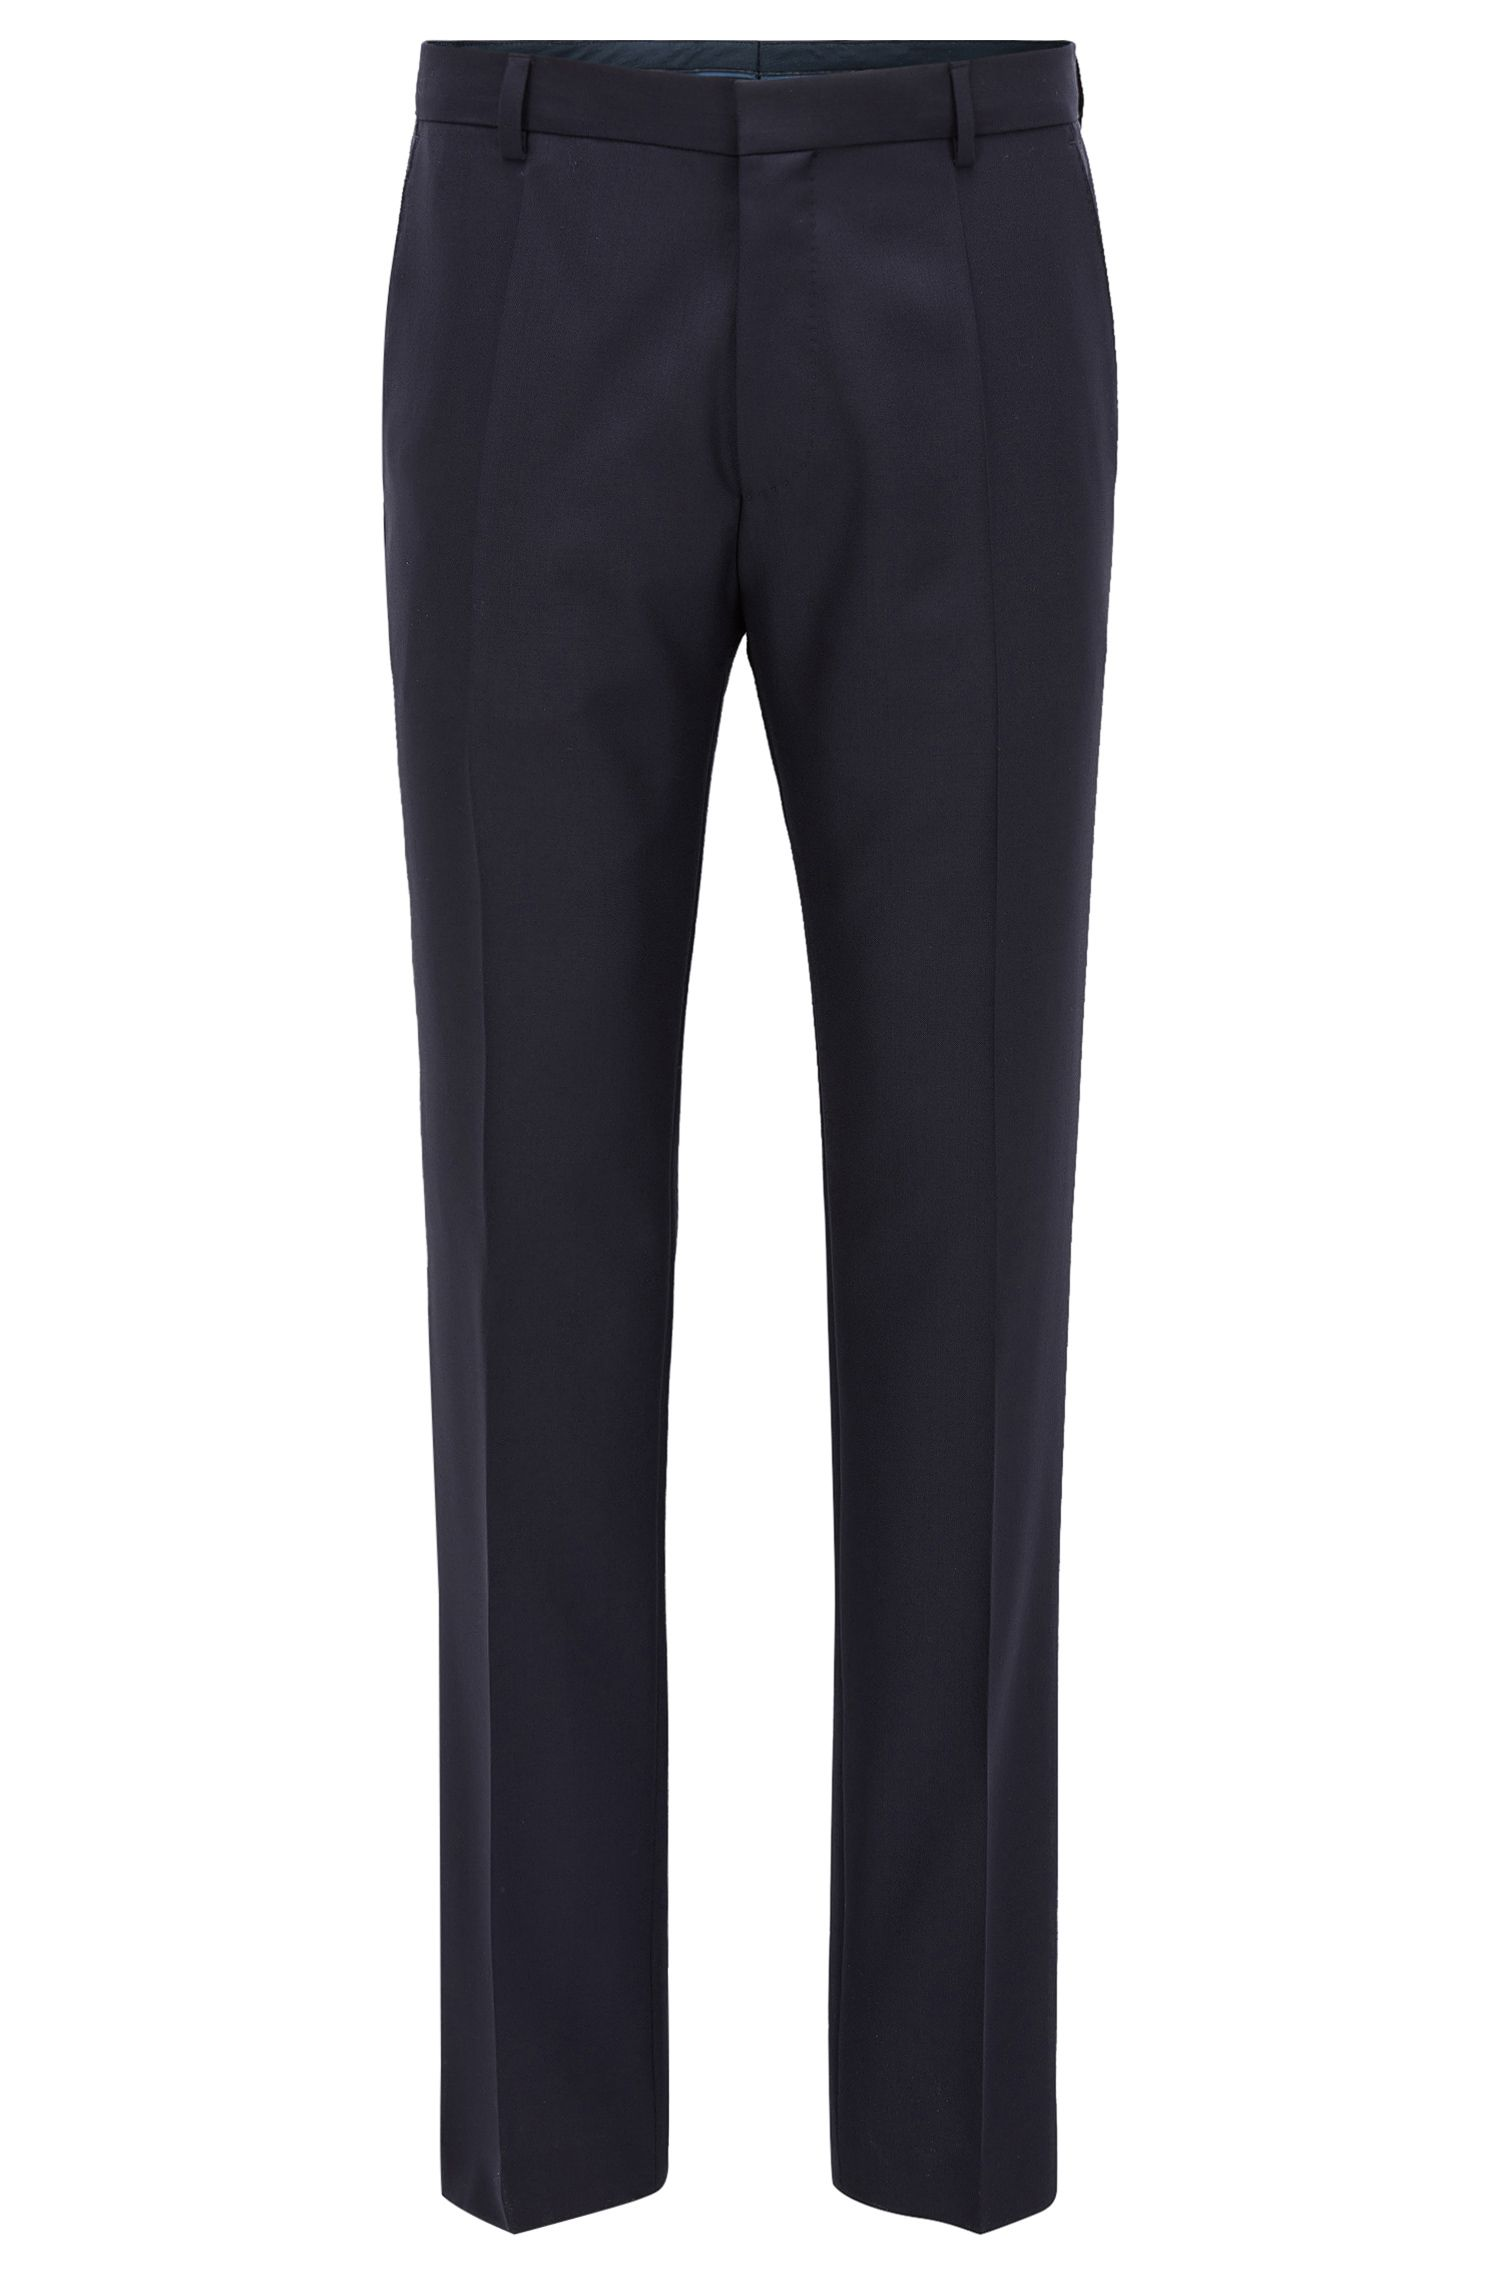 Travel Line slim-fit wool trousers with innovative details